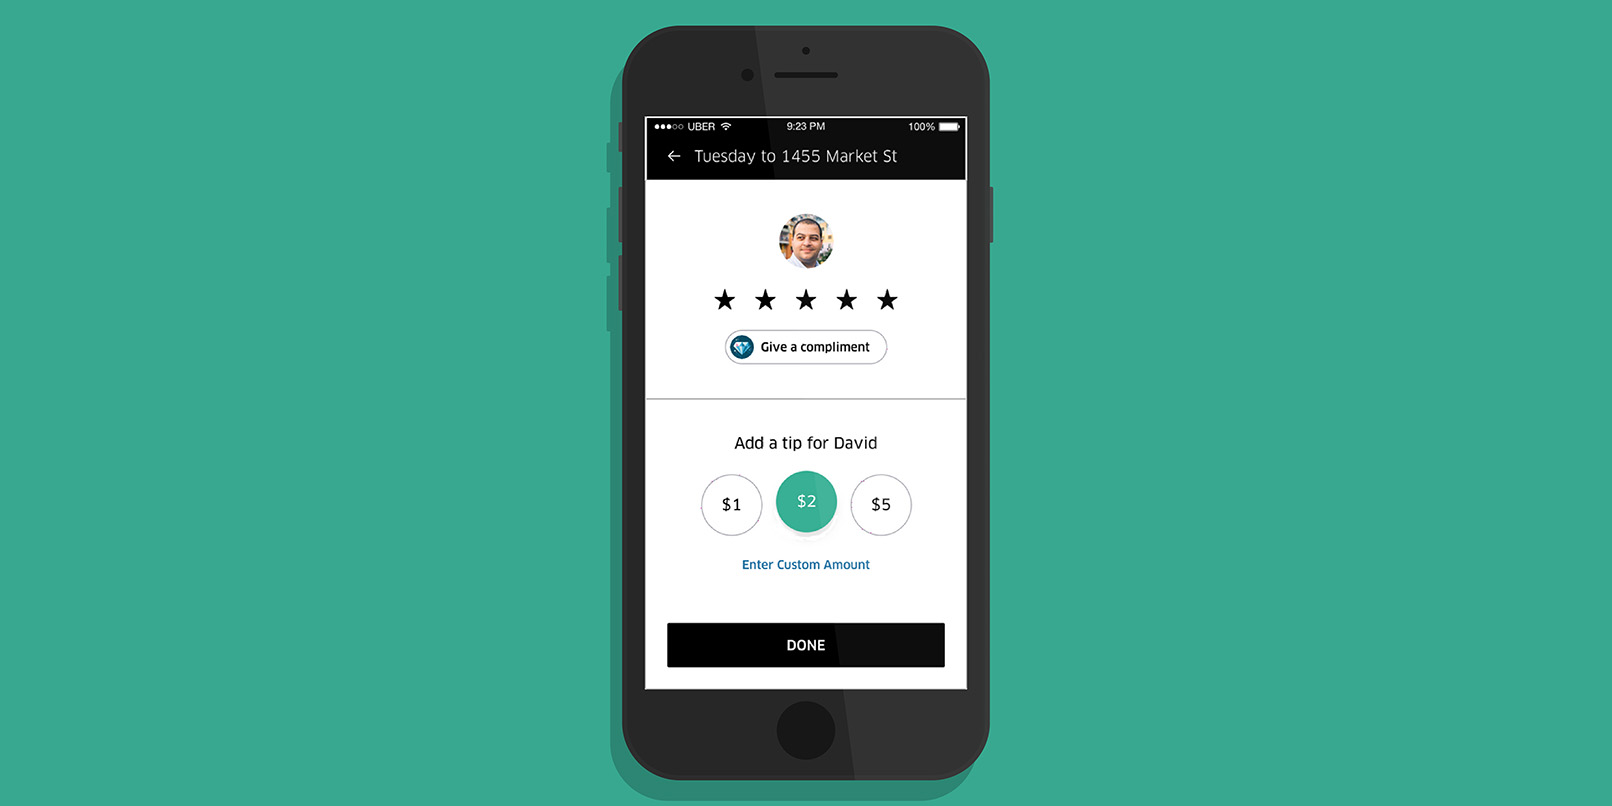 Dc5m United States It In English Created At 2017 06 22 0214 Belgian Startup Lets You Build Circuit Boards Online Wired Uk Uber Has Finally Caught Up To Its Rivals The Ridesharing Business With Launch Of Latest Feature Ability For Riders Pay Drivers A Tip